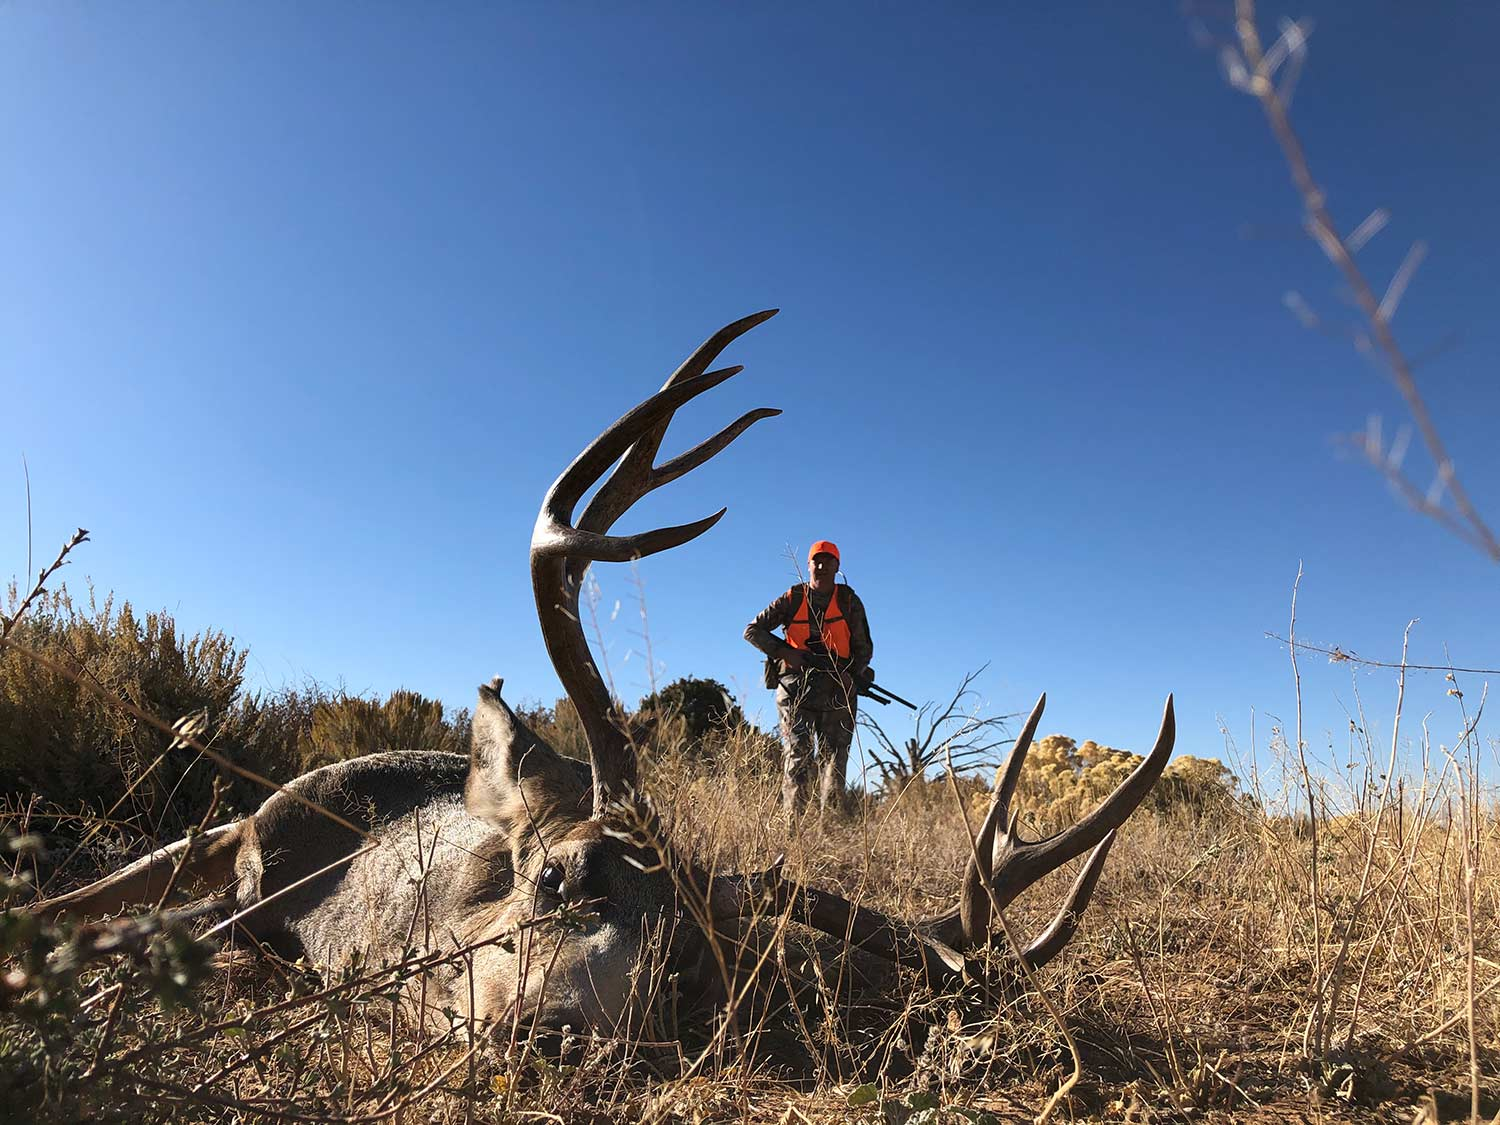 A hunter walks up on a downed whitetail deer in a field.